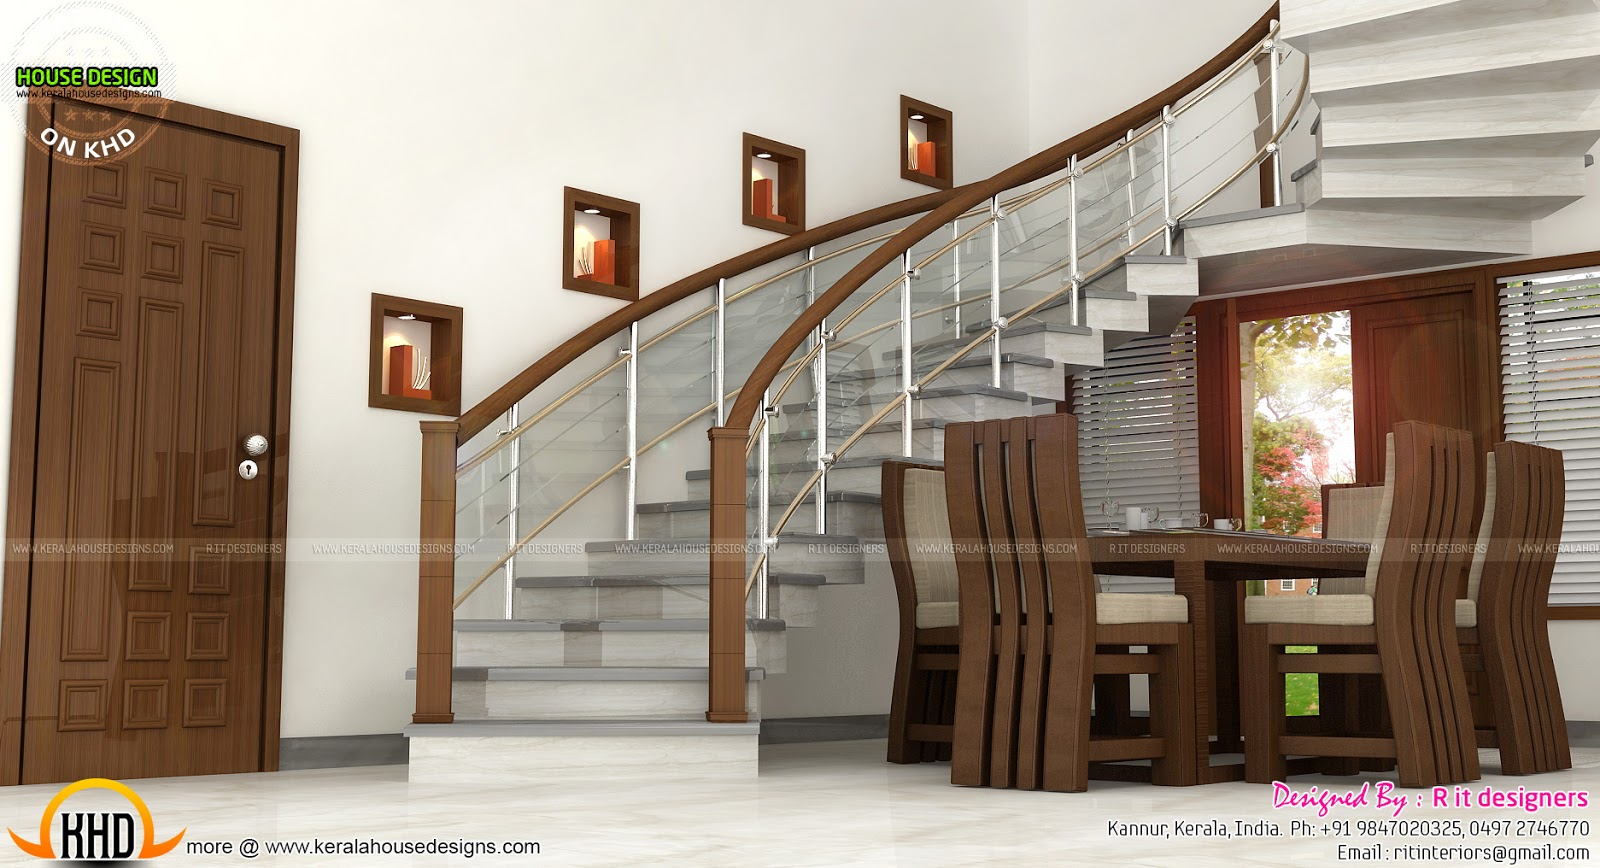 June 2015 kerala home design and floor plans for House interior design kerala photos